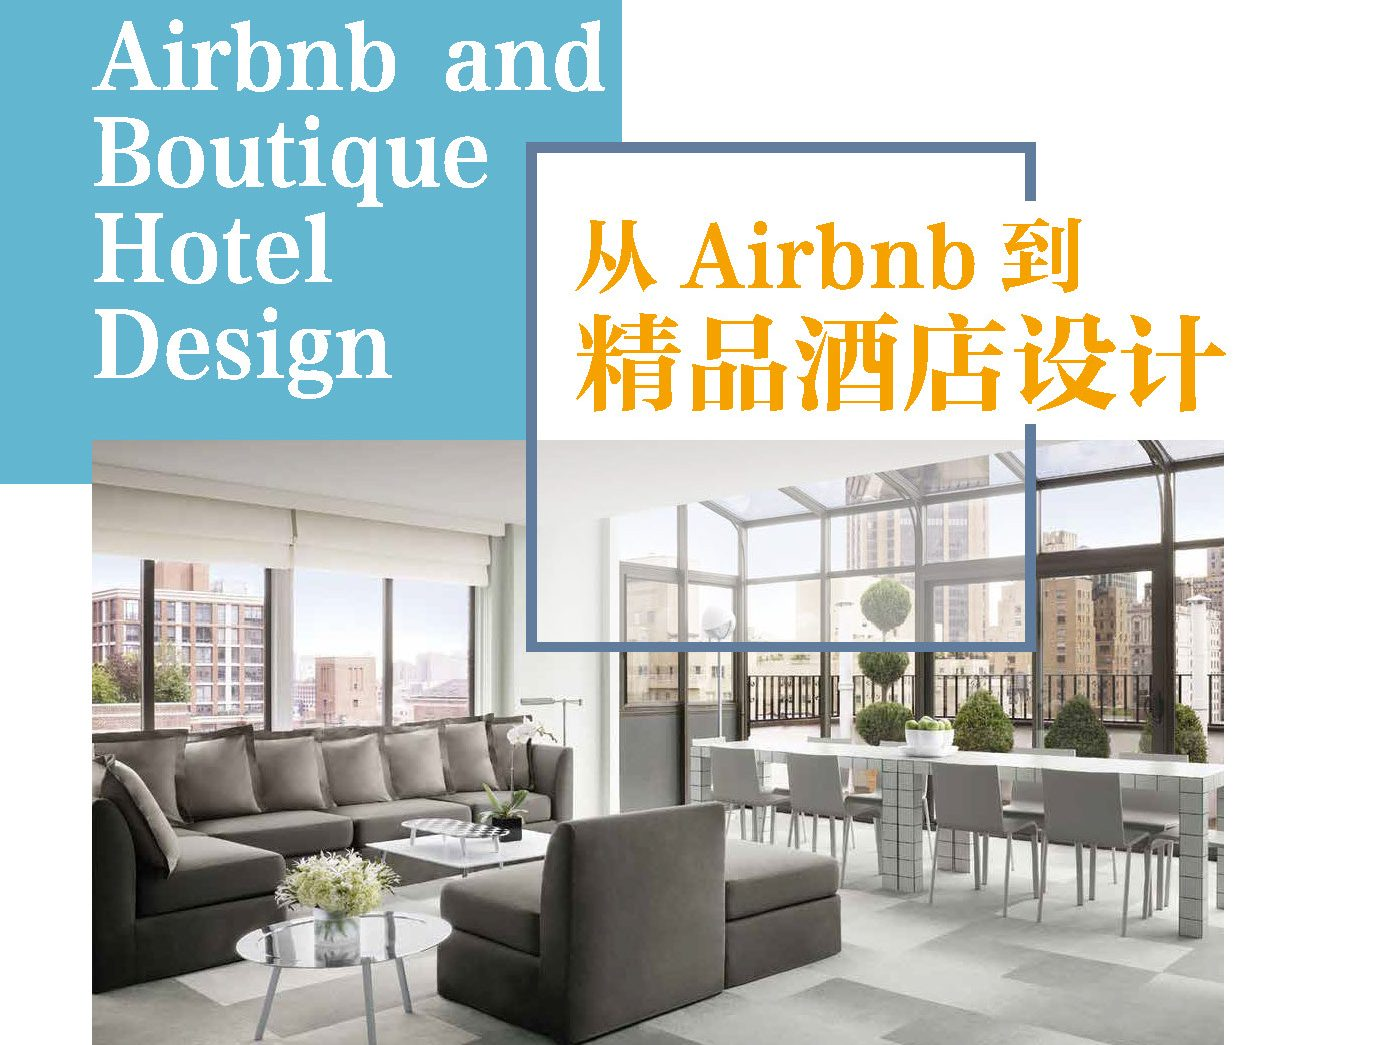 Airbnb and Boutique Hotel Design